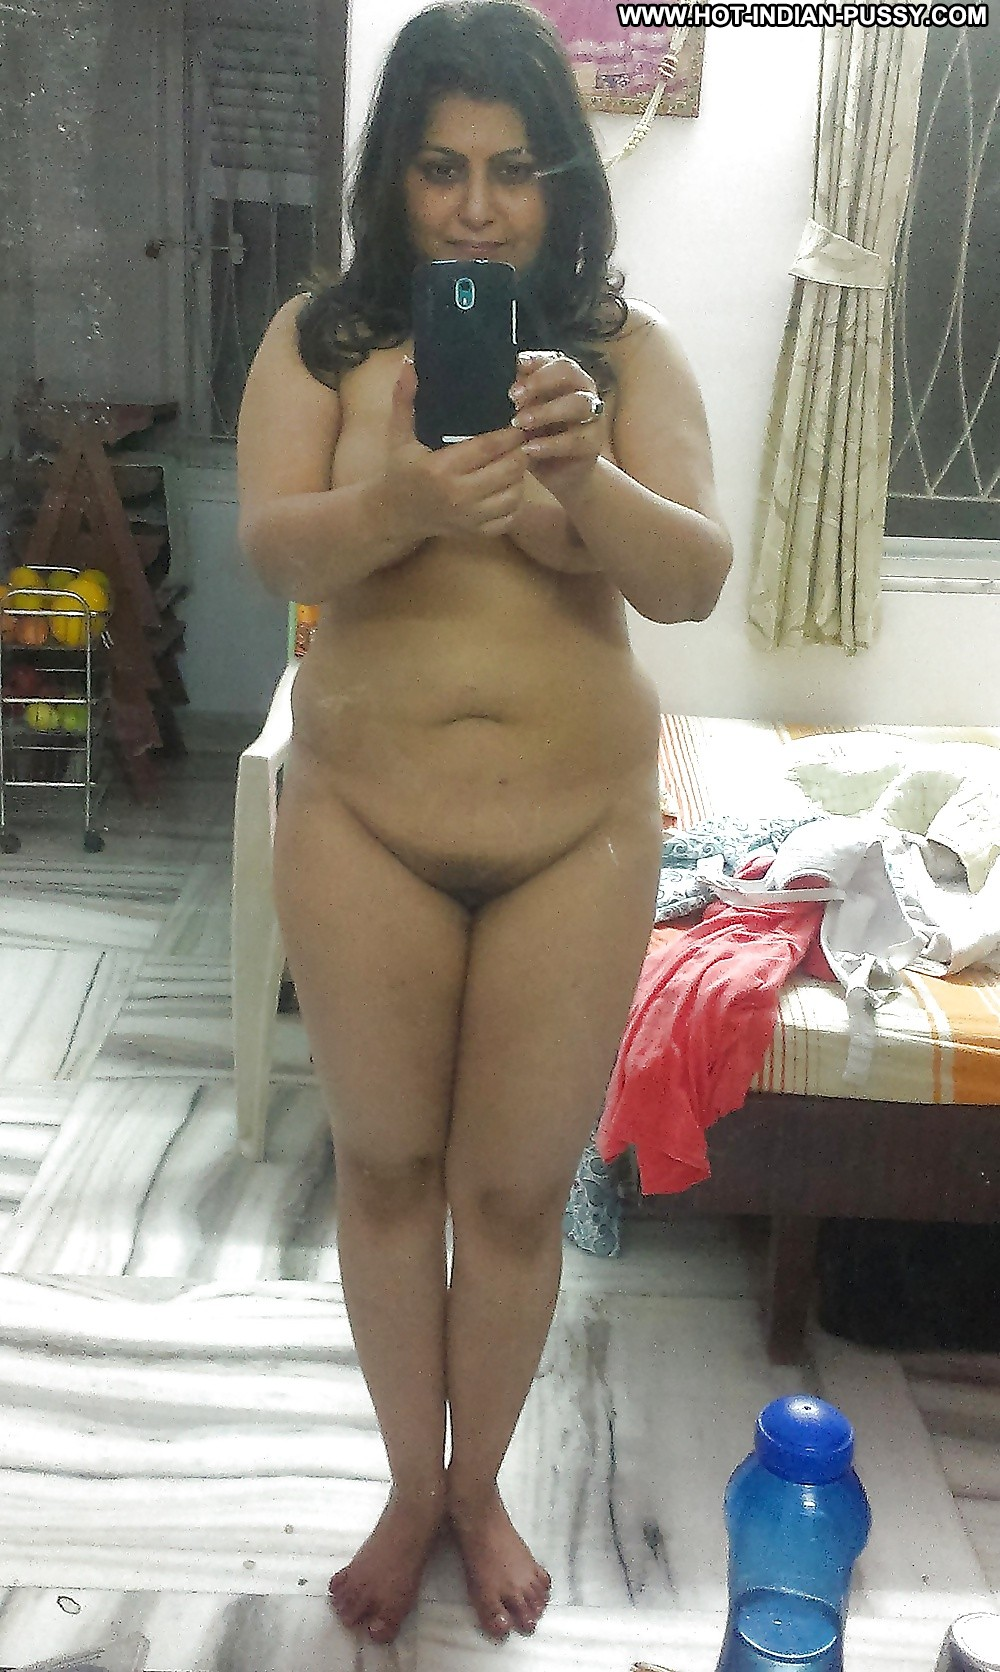 Sharice Private Pics Indian Desi Big Tits Fat Chubby Flashing College Girl Hot Ass-2281